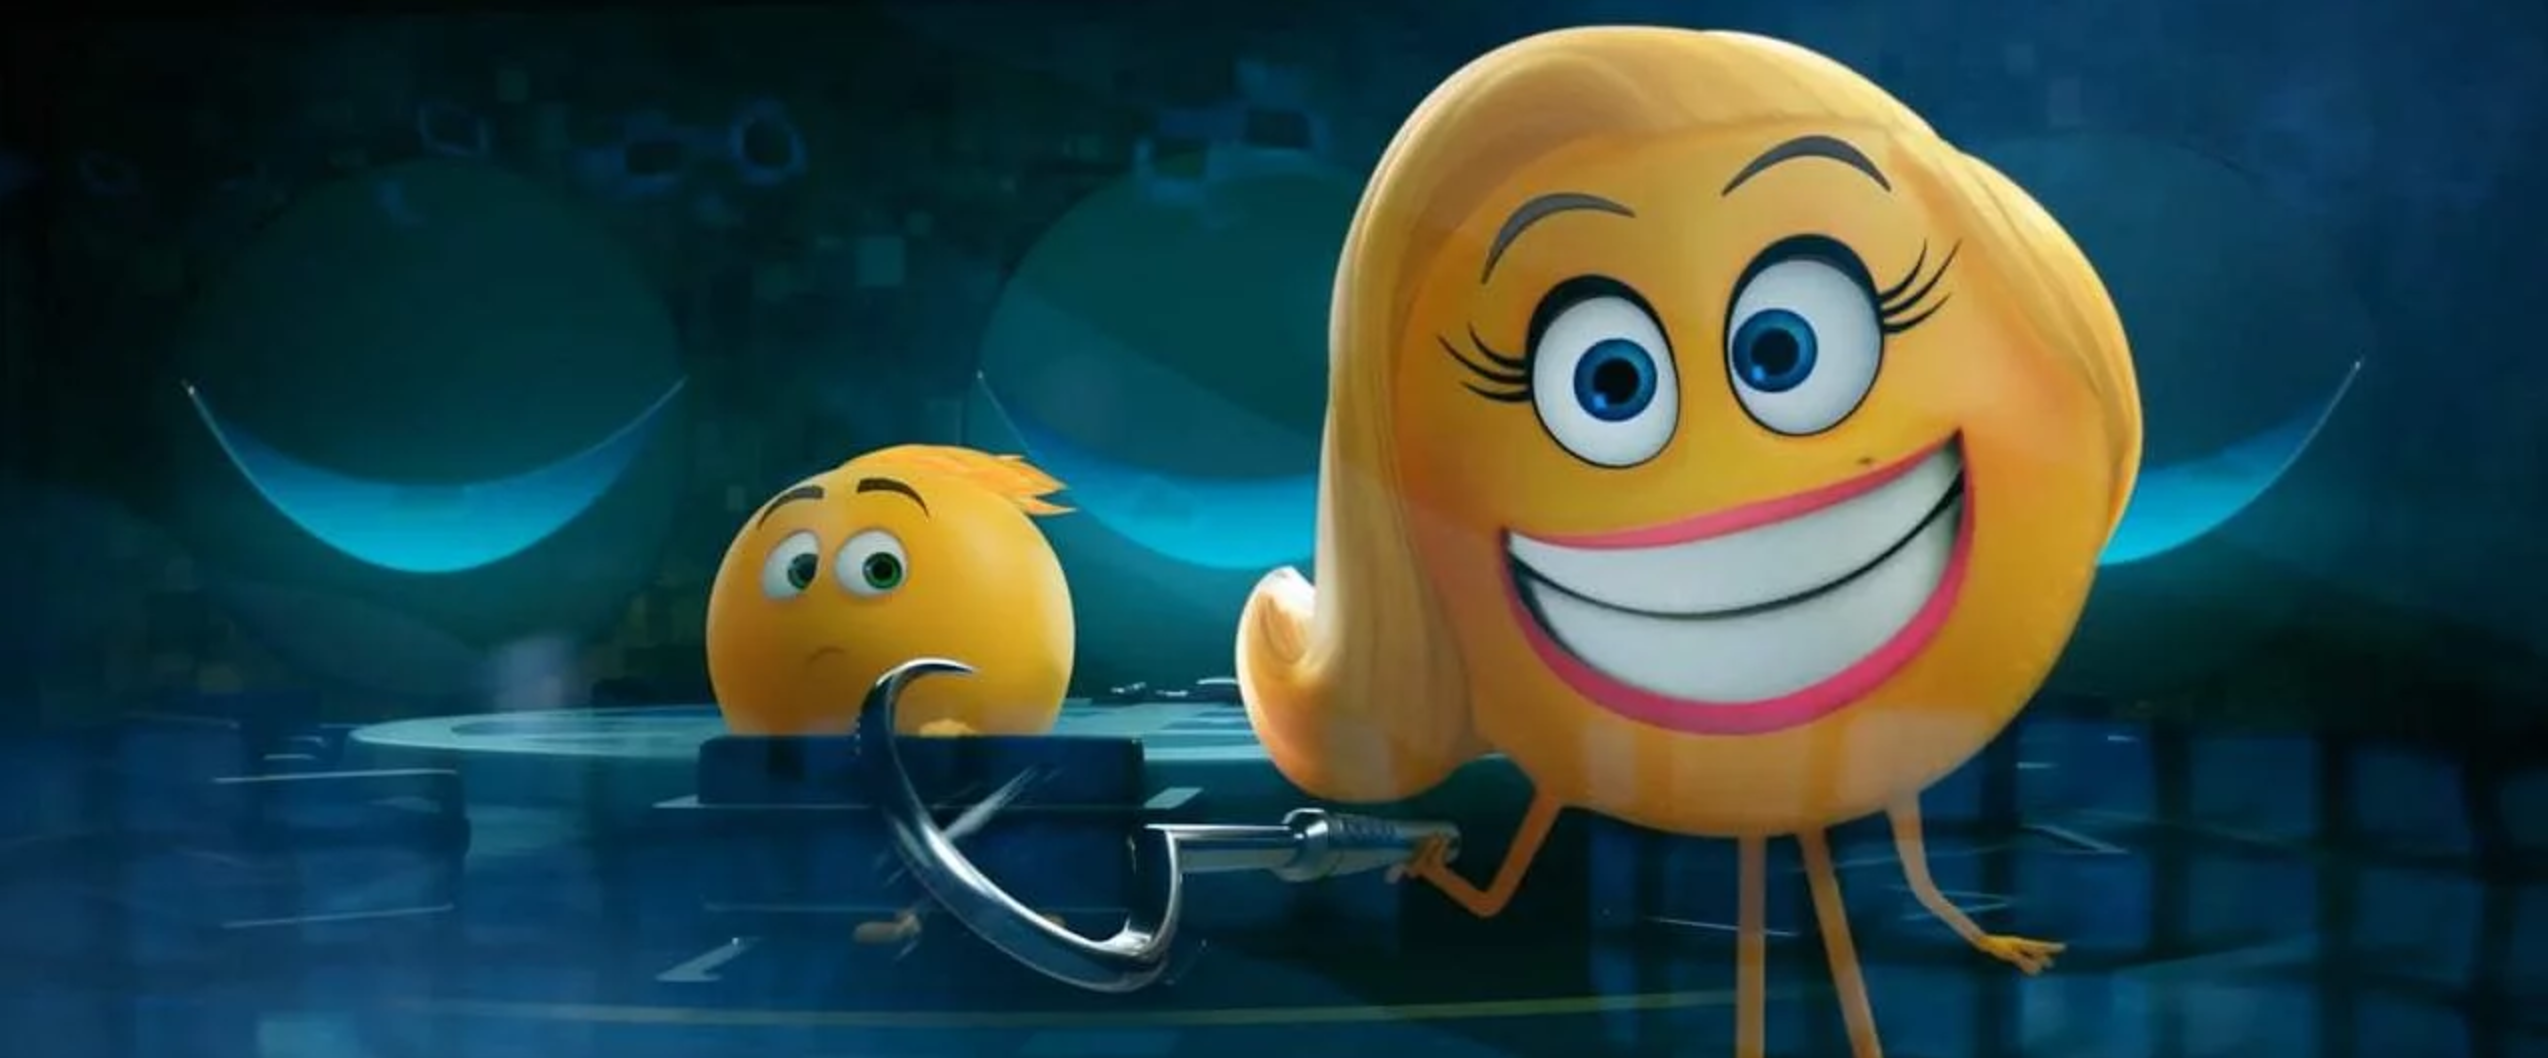 Maya Rudolph as Smiler in THE EMOJI MOVIE (2017) © Sony Pictures Animation